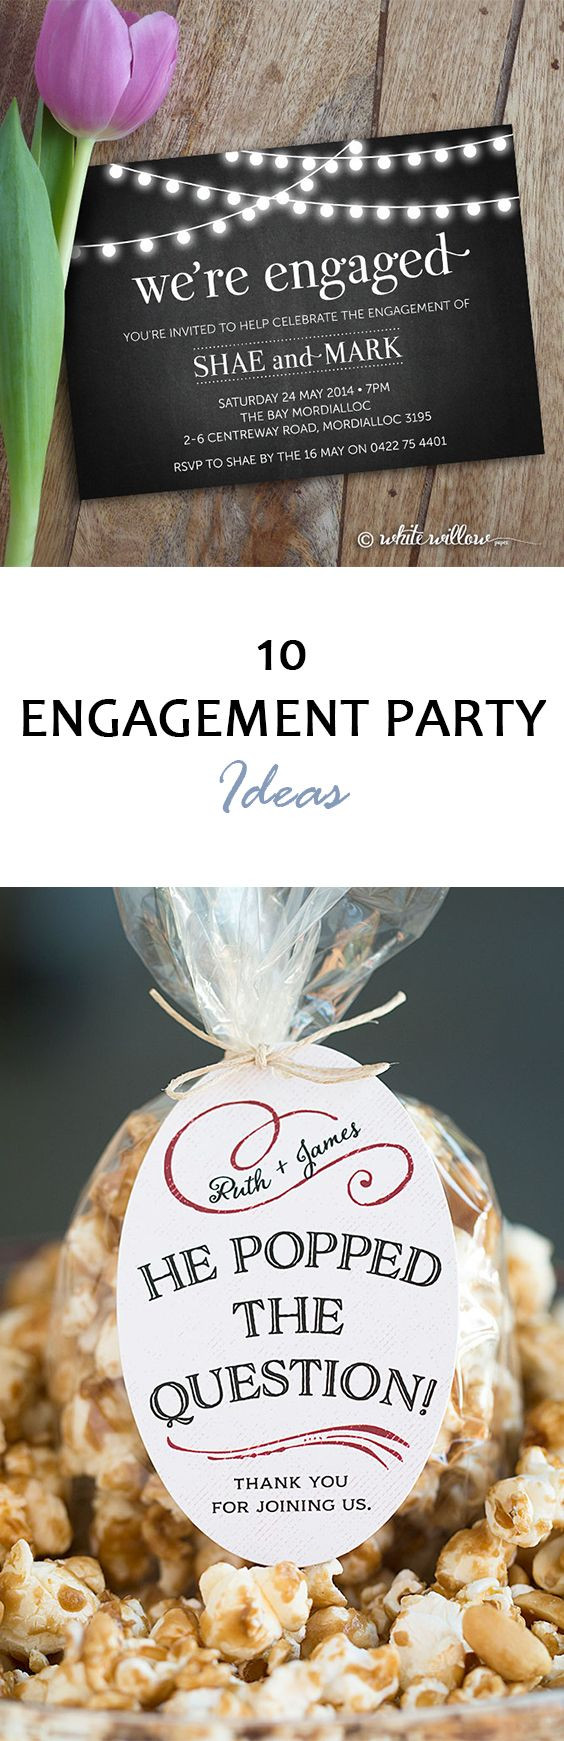 Best ideas about Cheap Wedding Gift Ideas . Save or Pin Best 25 Inexpensive Bridal Shower Gifts ideas on Now.